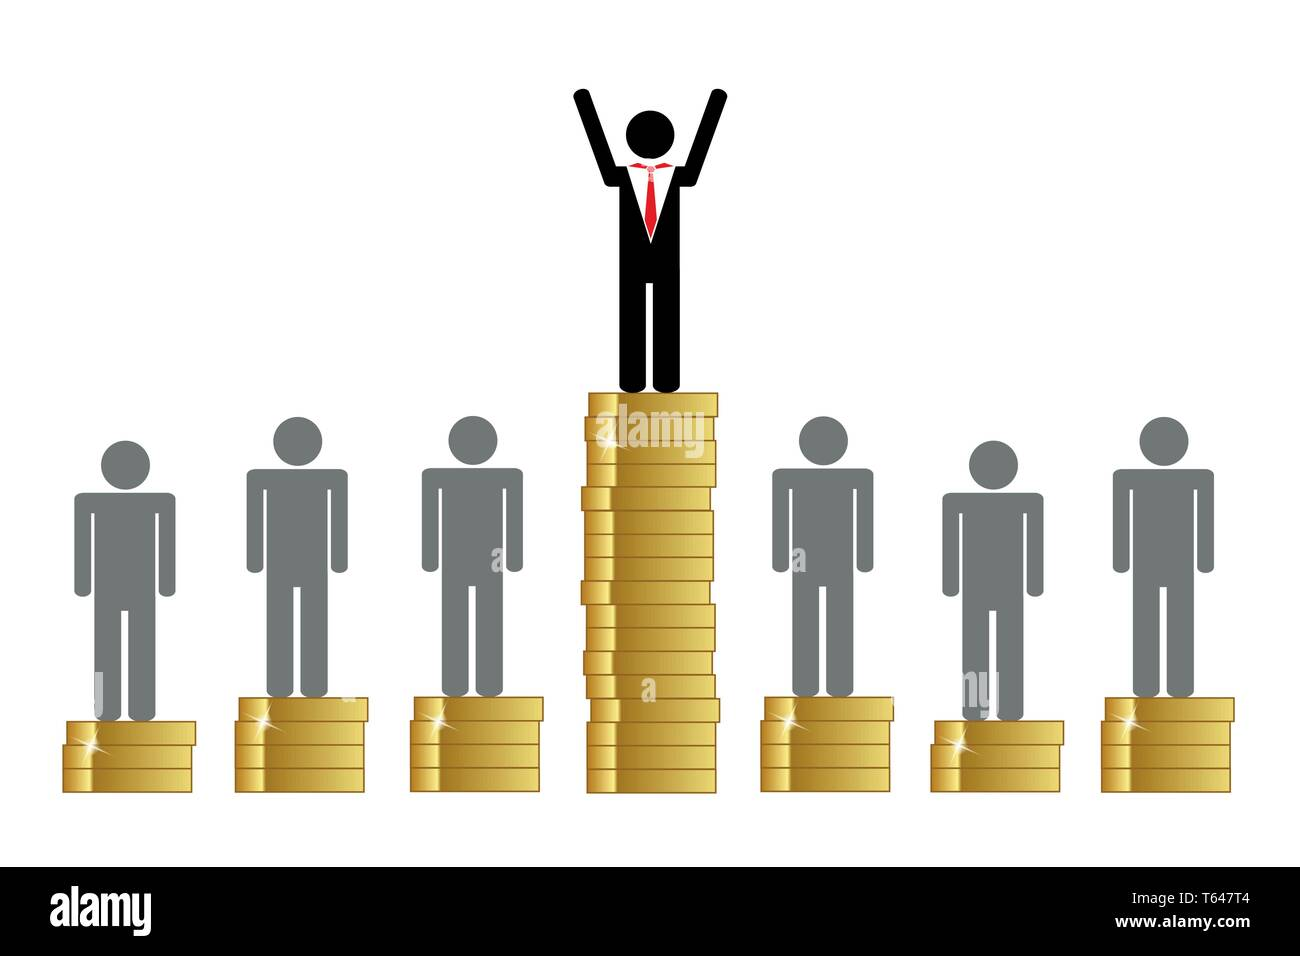 gap between rich and poor finance pictogram with coins vector illustration EPS10 - Stock Image